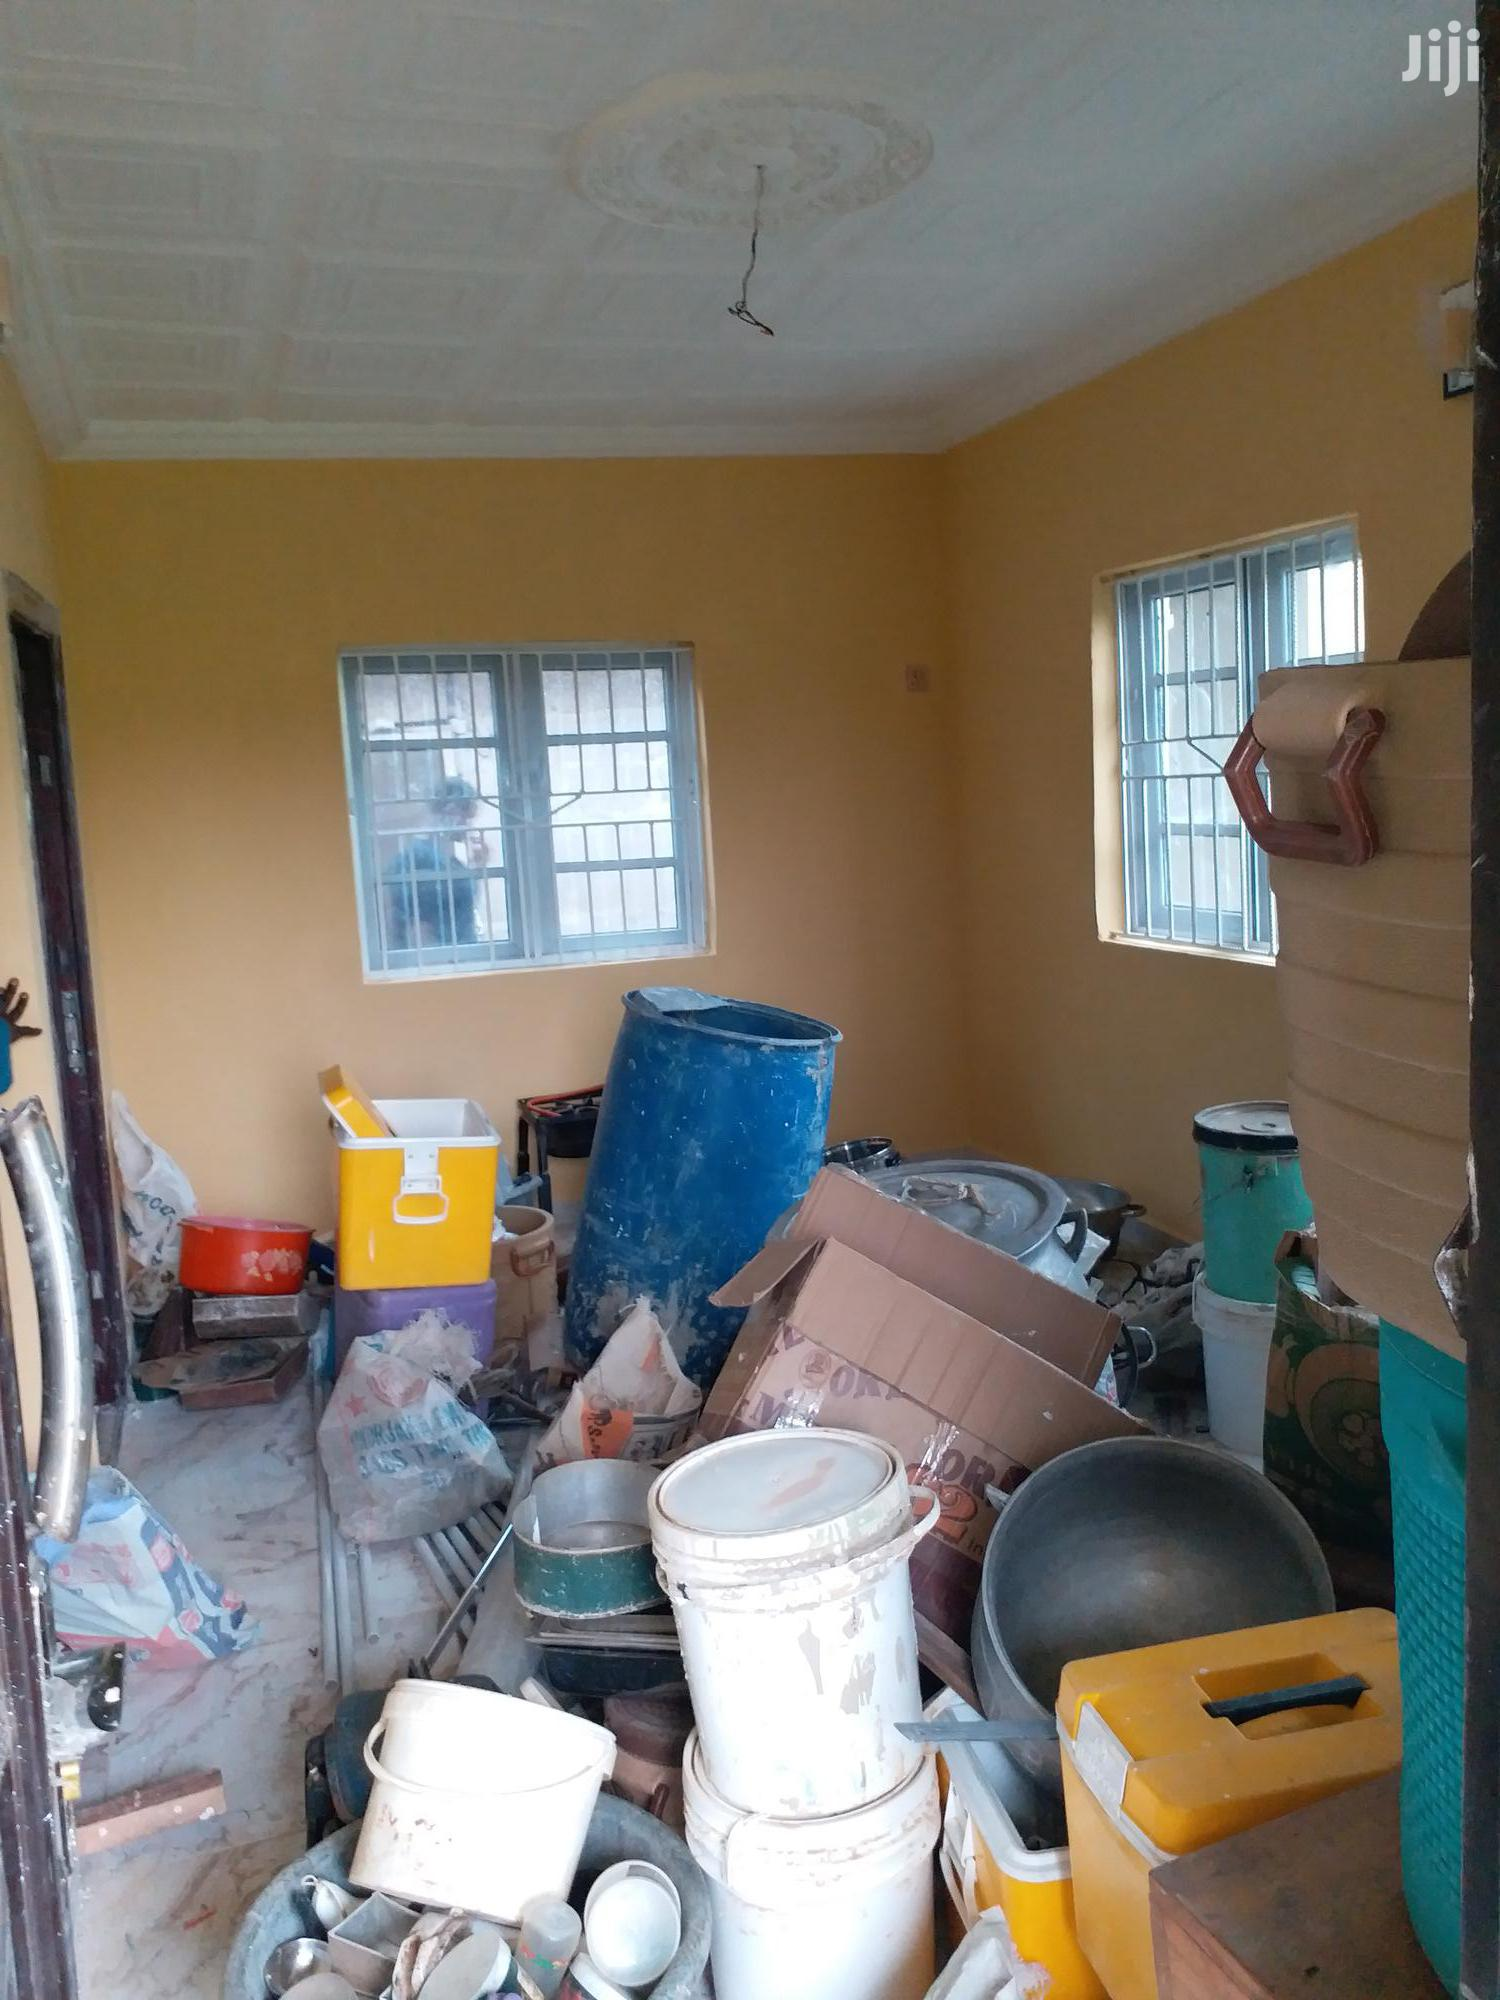 Room And Parlour Self Con 120k Per Annum With Visitors Toilet | Houses & Apartments For Rent for sale in Ikorodu, Lagos State, Nigeria